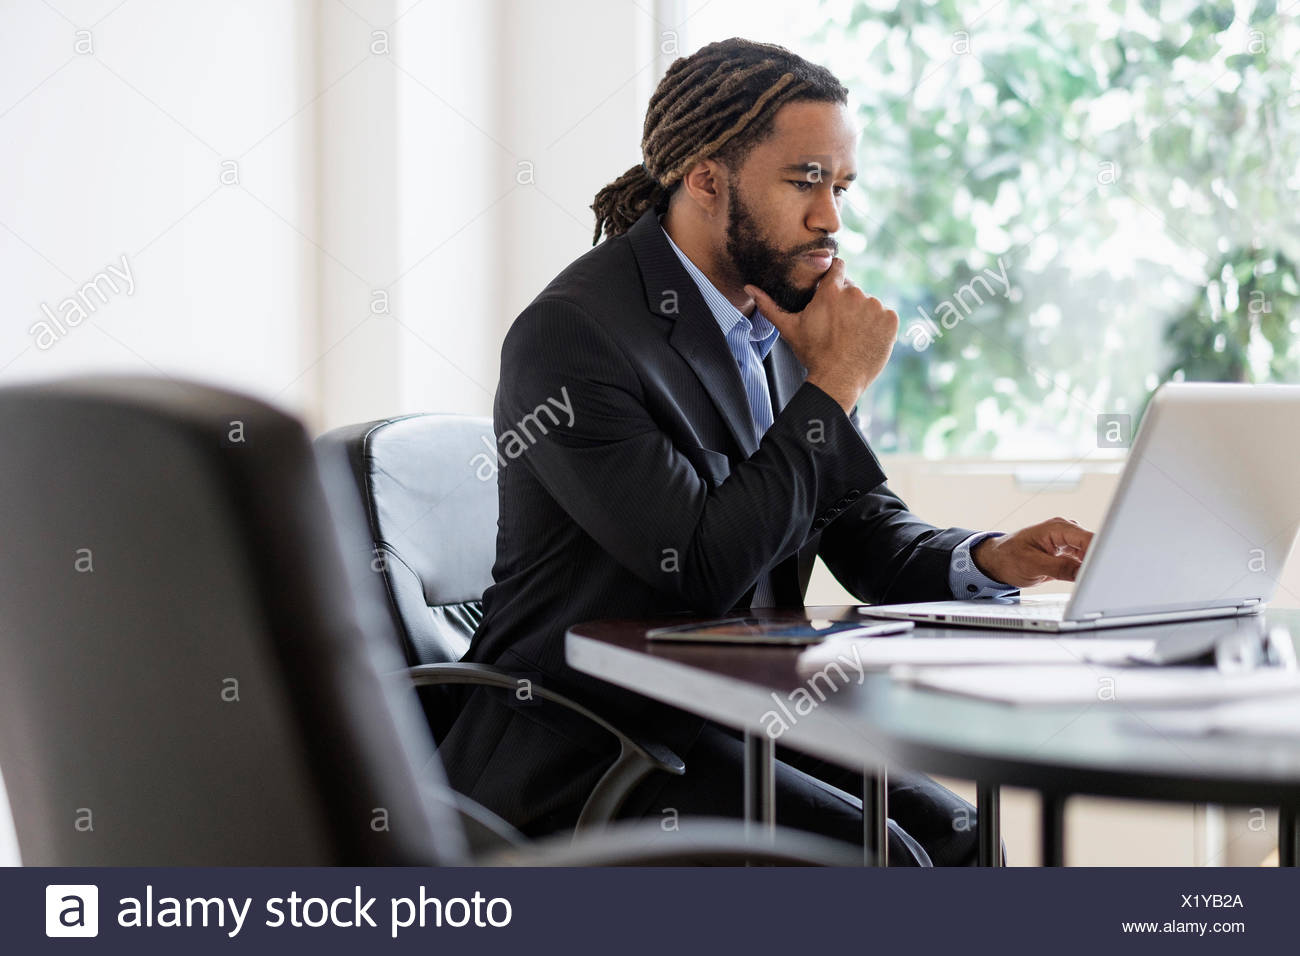 Concentrated businessman working with laptop at desk in office - Stock Image